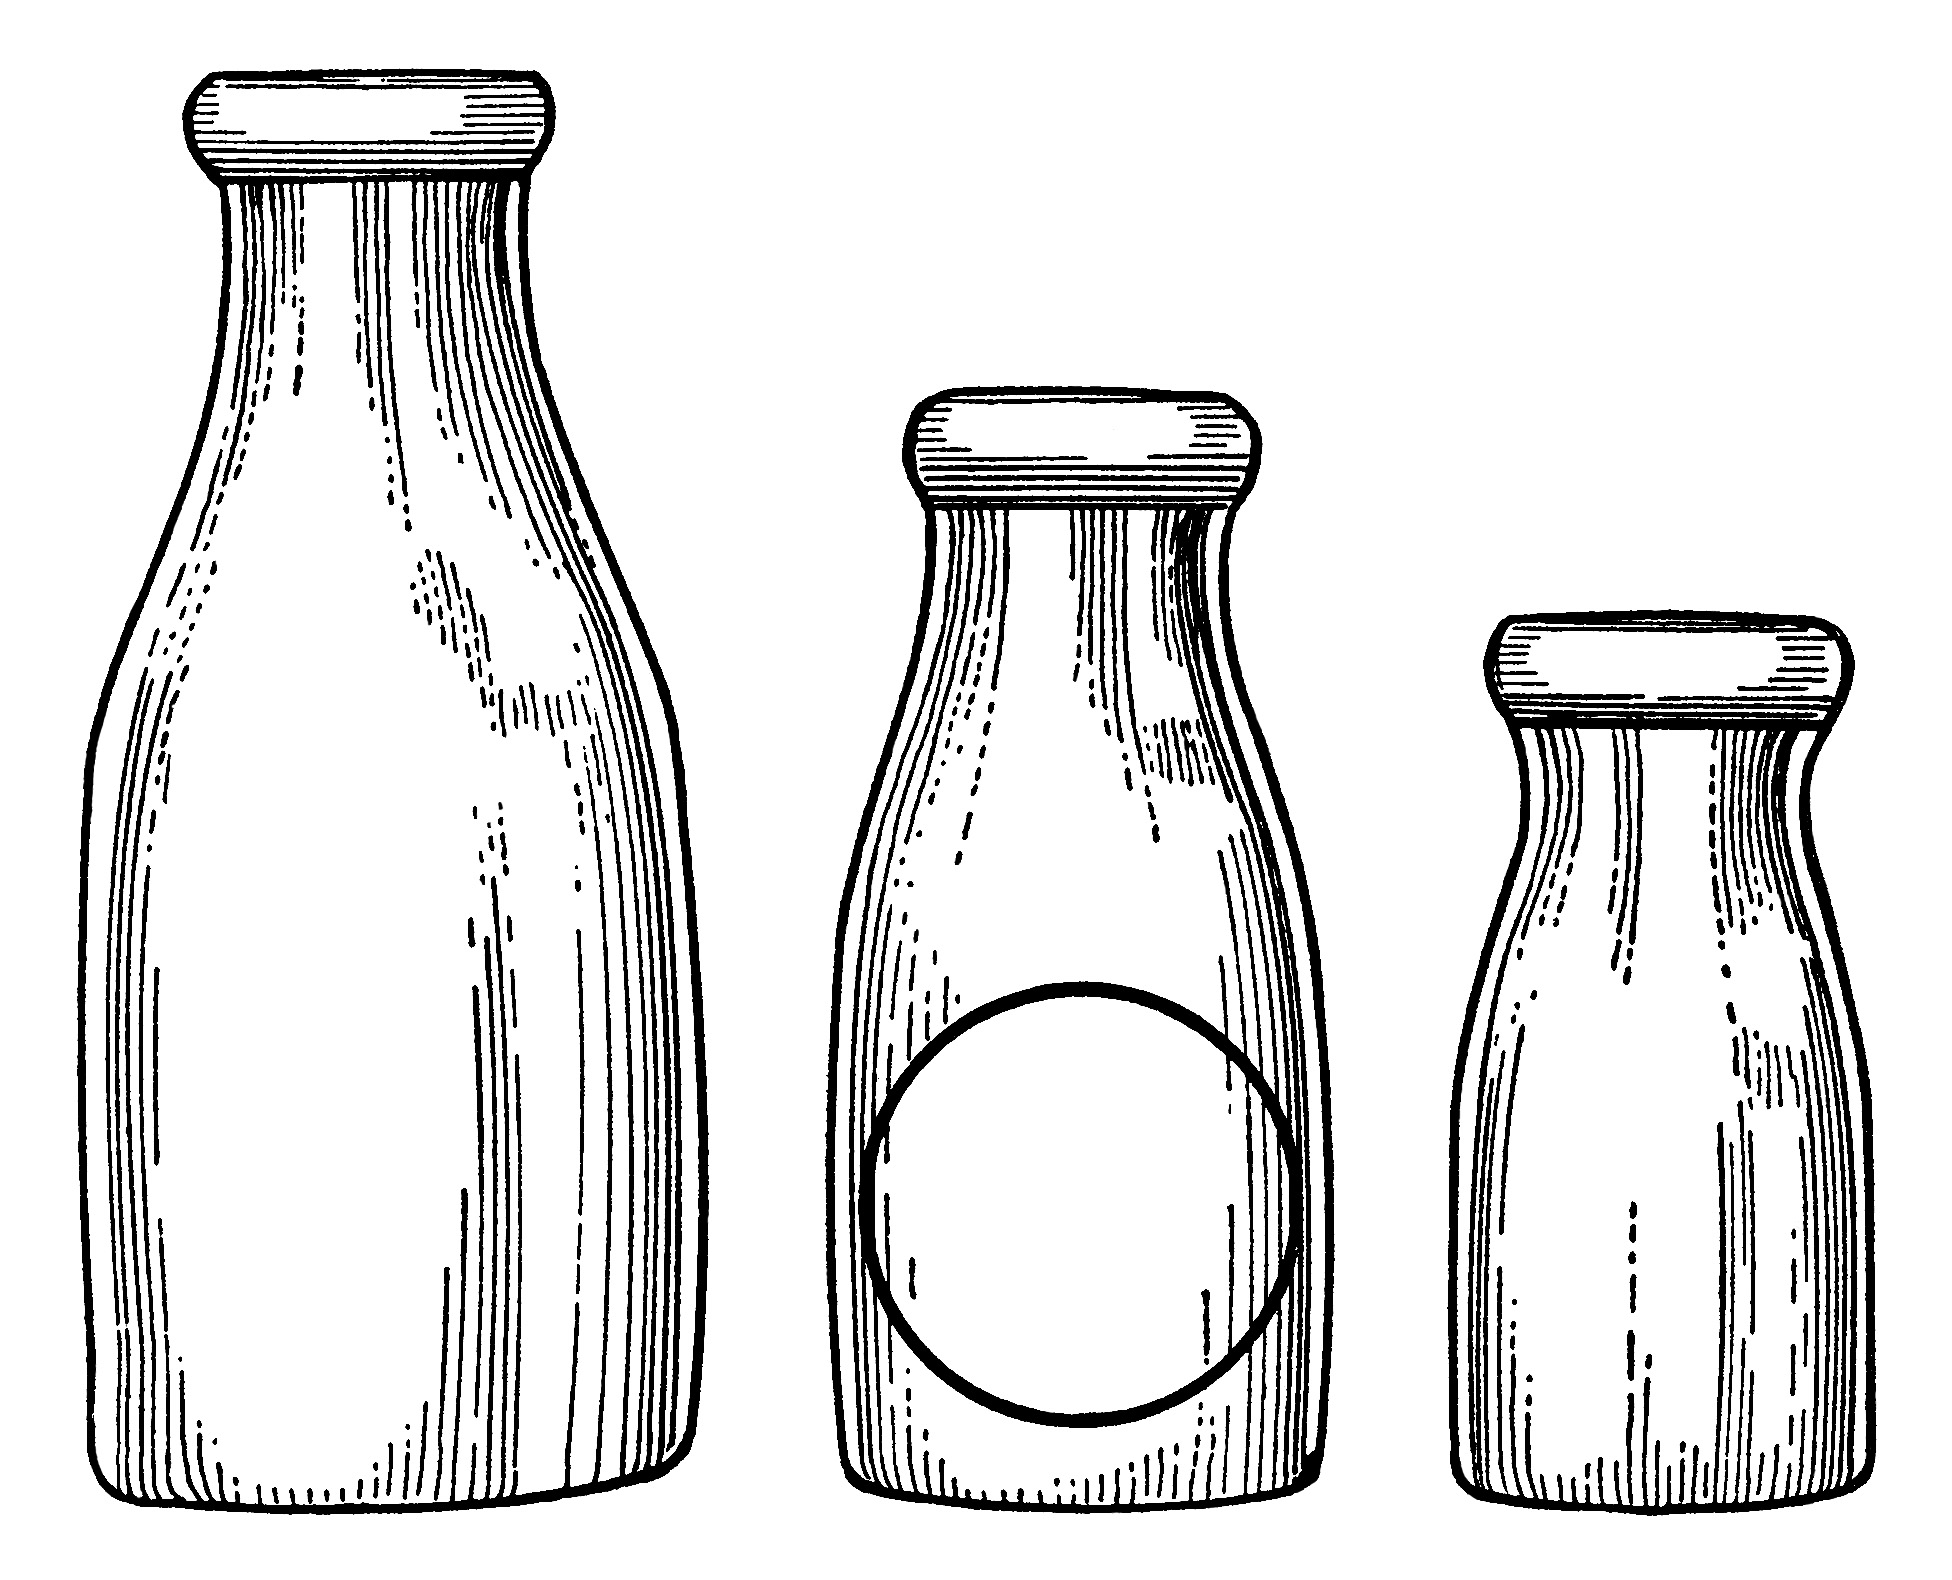 Outline of old fashioned medicine bottle clipart black and white freeuse stock Bottles Clipart | Free download best Bottles Clipart on ... freeuse stock